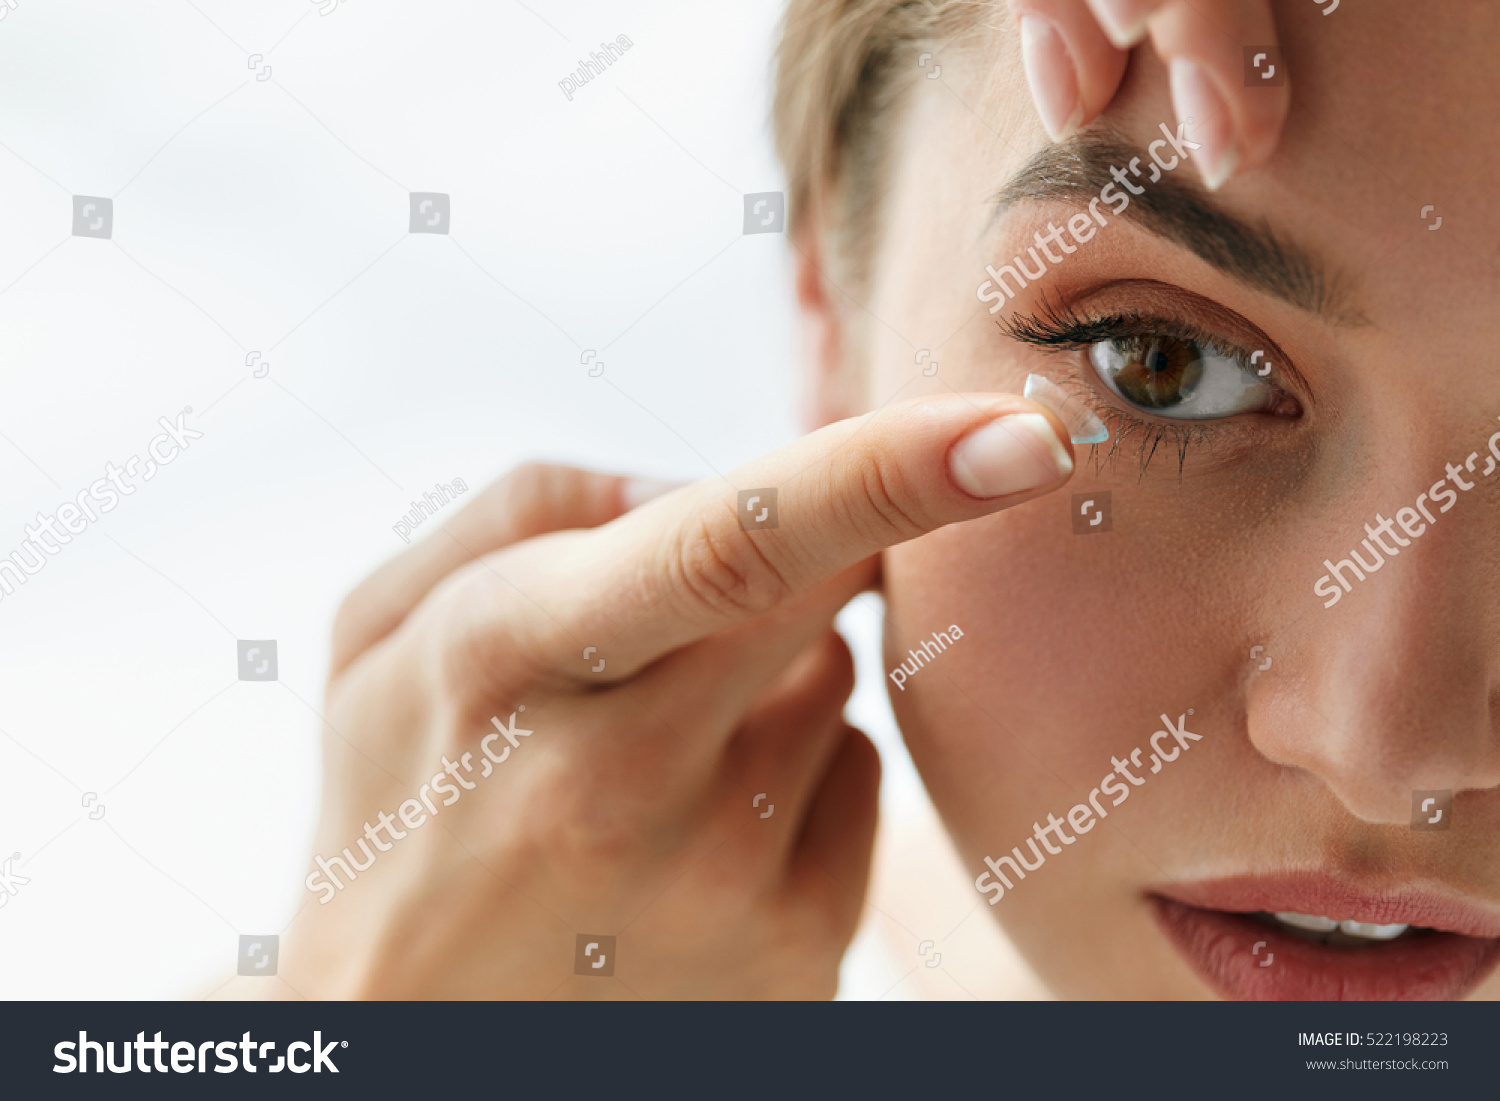 Contact Lens For Vision. Closeup Of Female Face With Applying Contact Lens On Her Brown Eyes. Beautiful Woman Putting Eye Lenses With Hands. Opthalmology Medicine And Health. High Resolution  #522198223